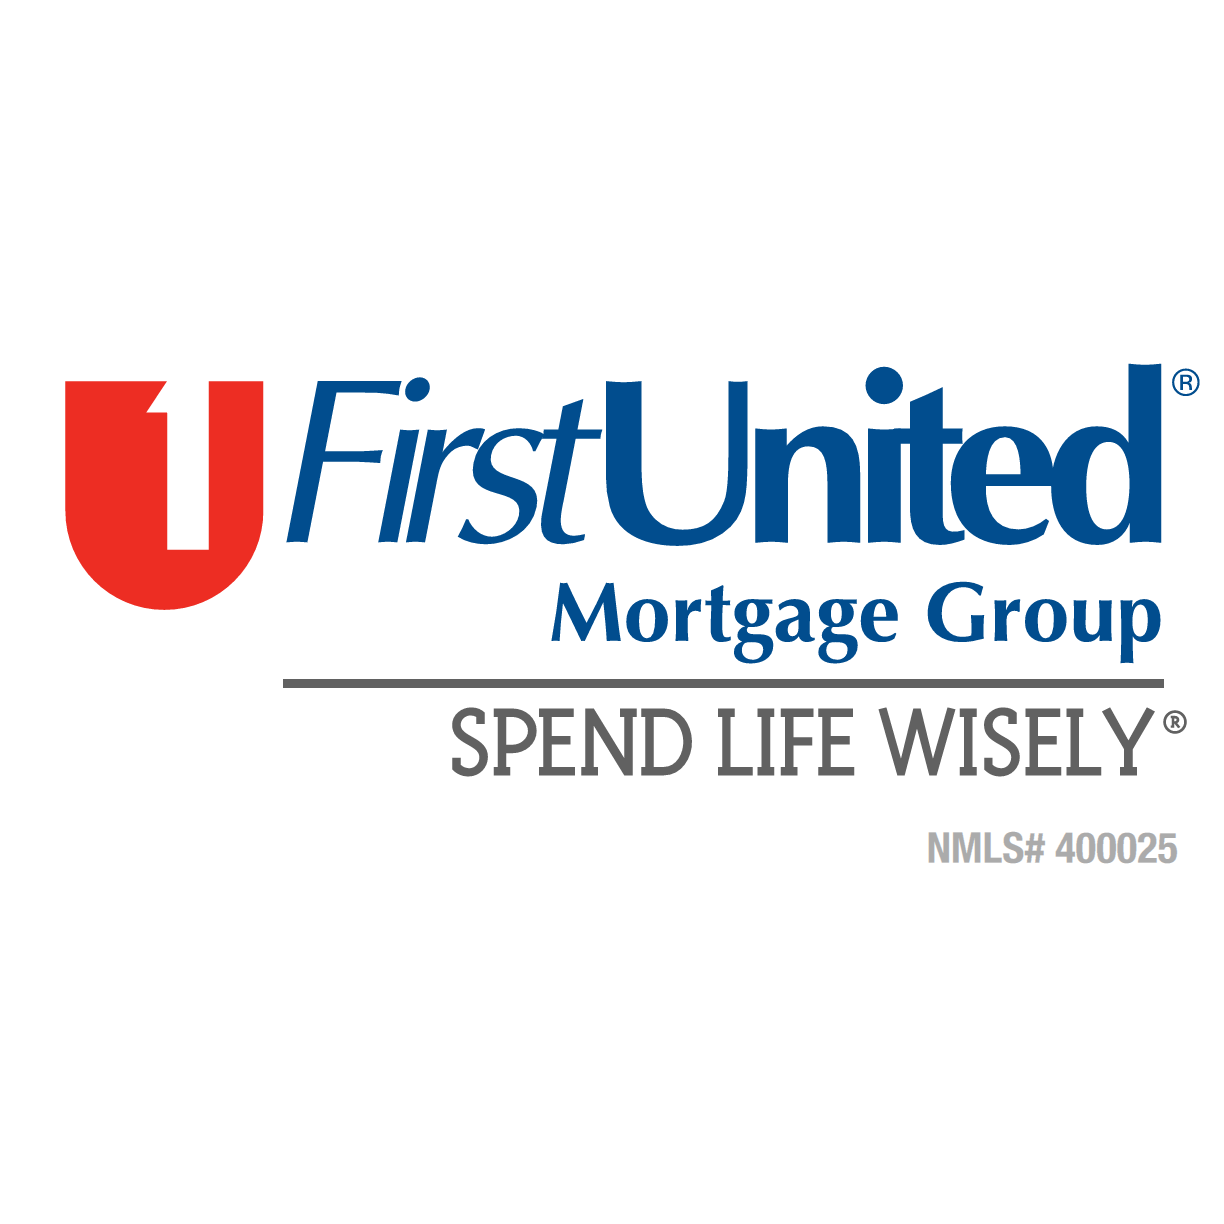 Maria Leach | First United Mortgage Group